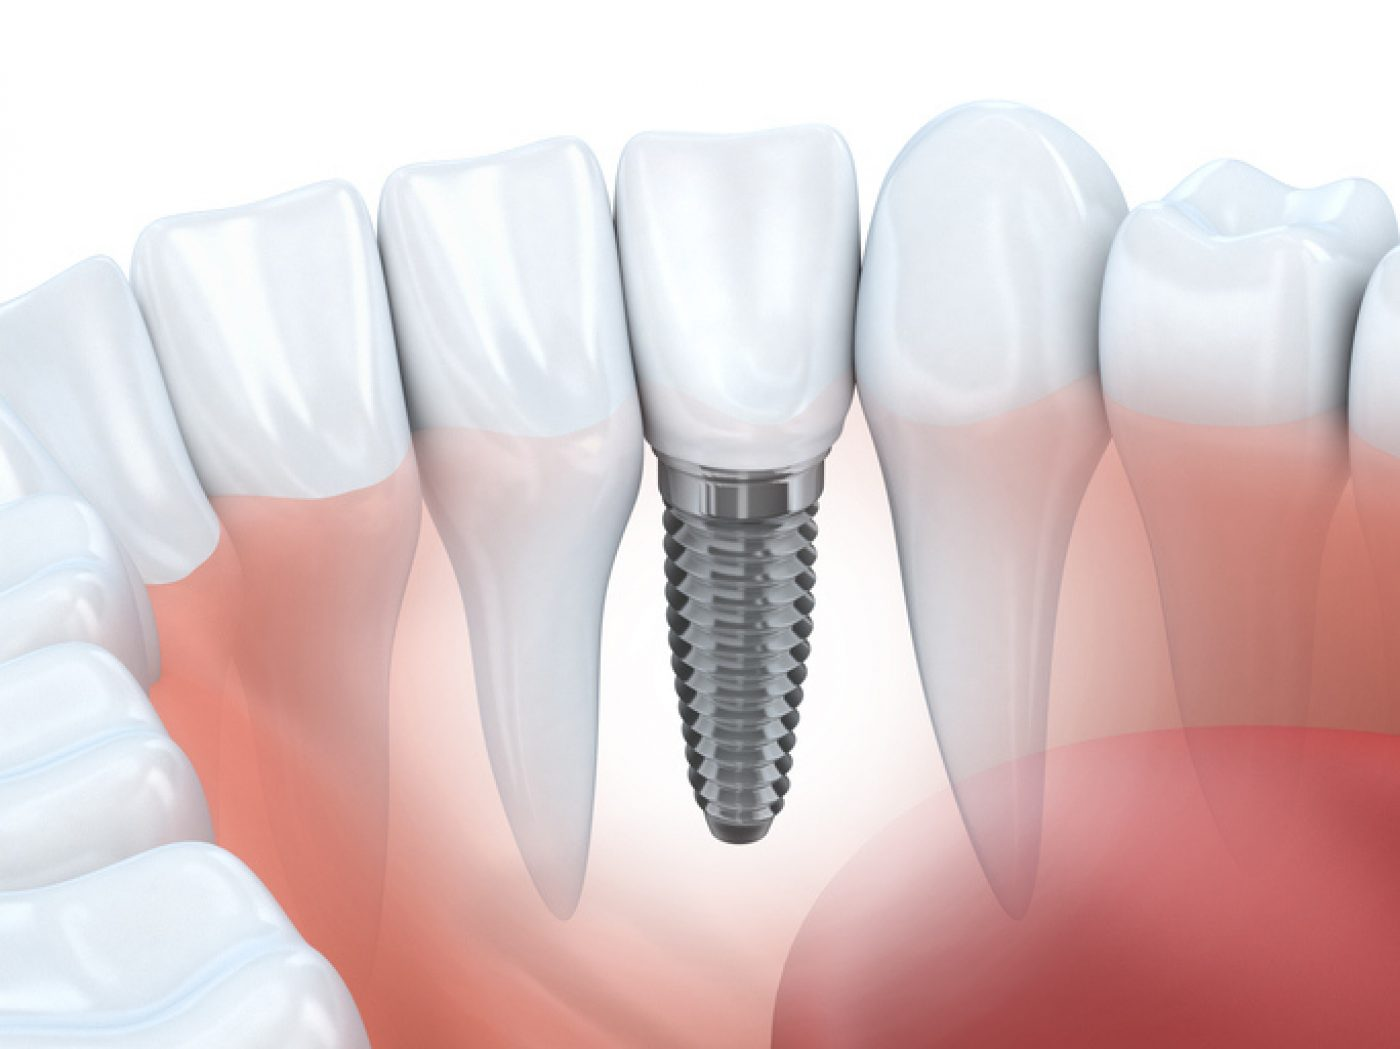 Single Implant Uppingham Dental Implant Clinic